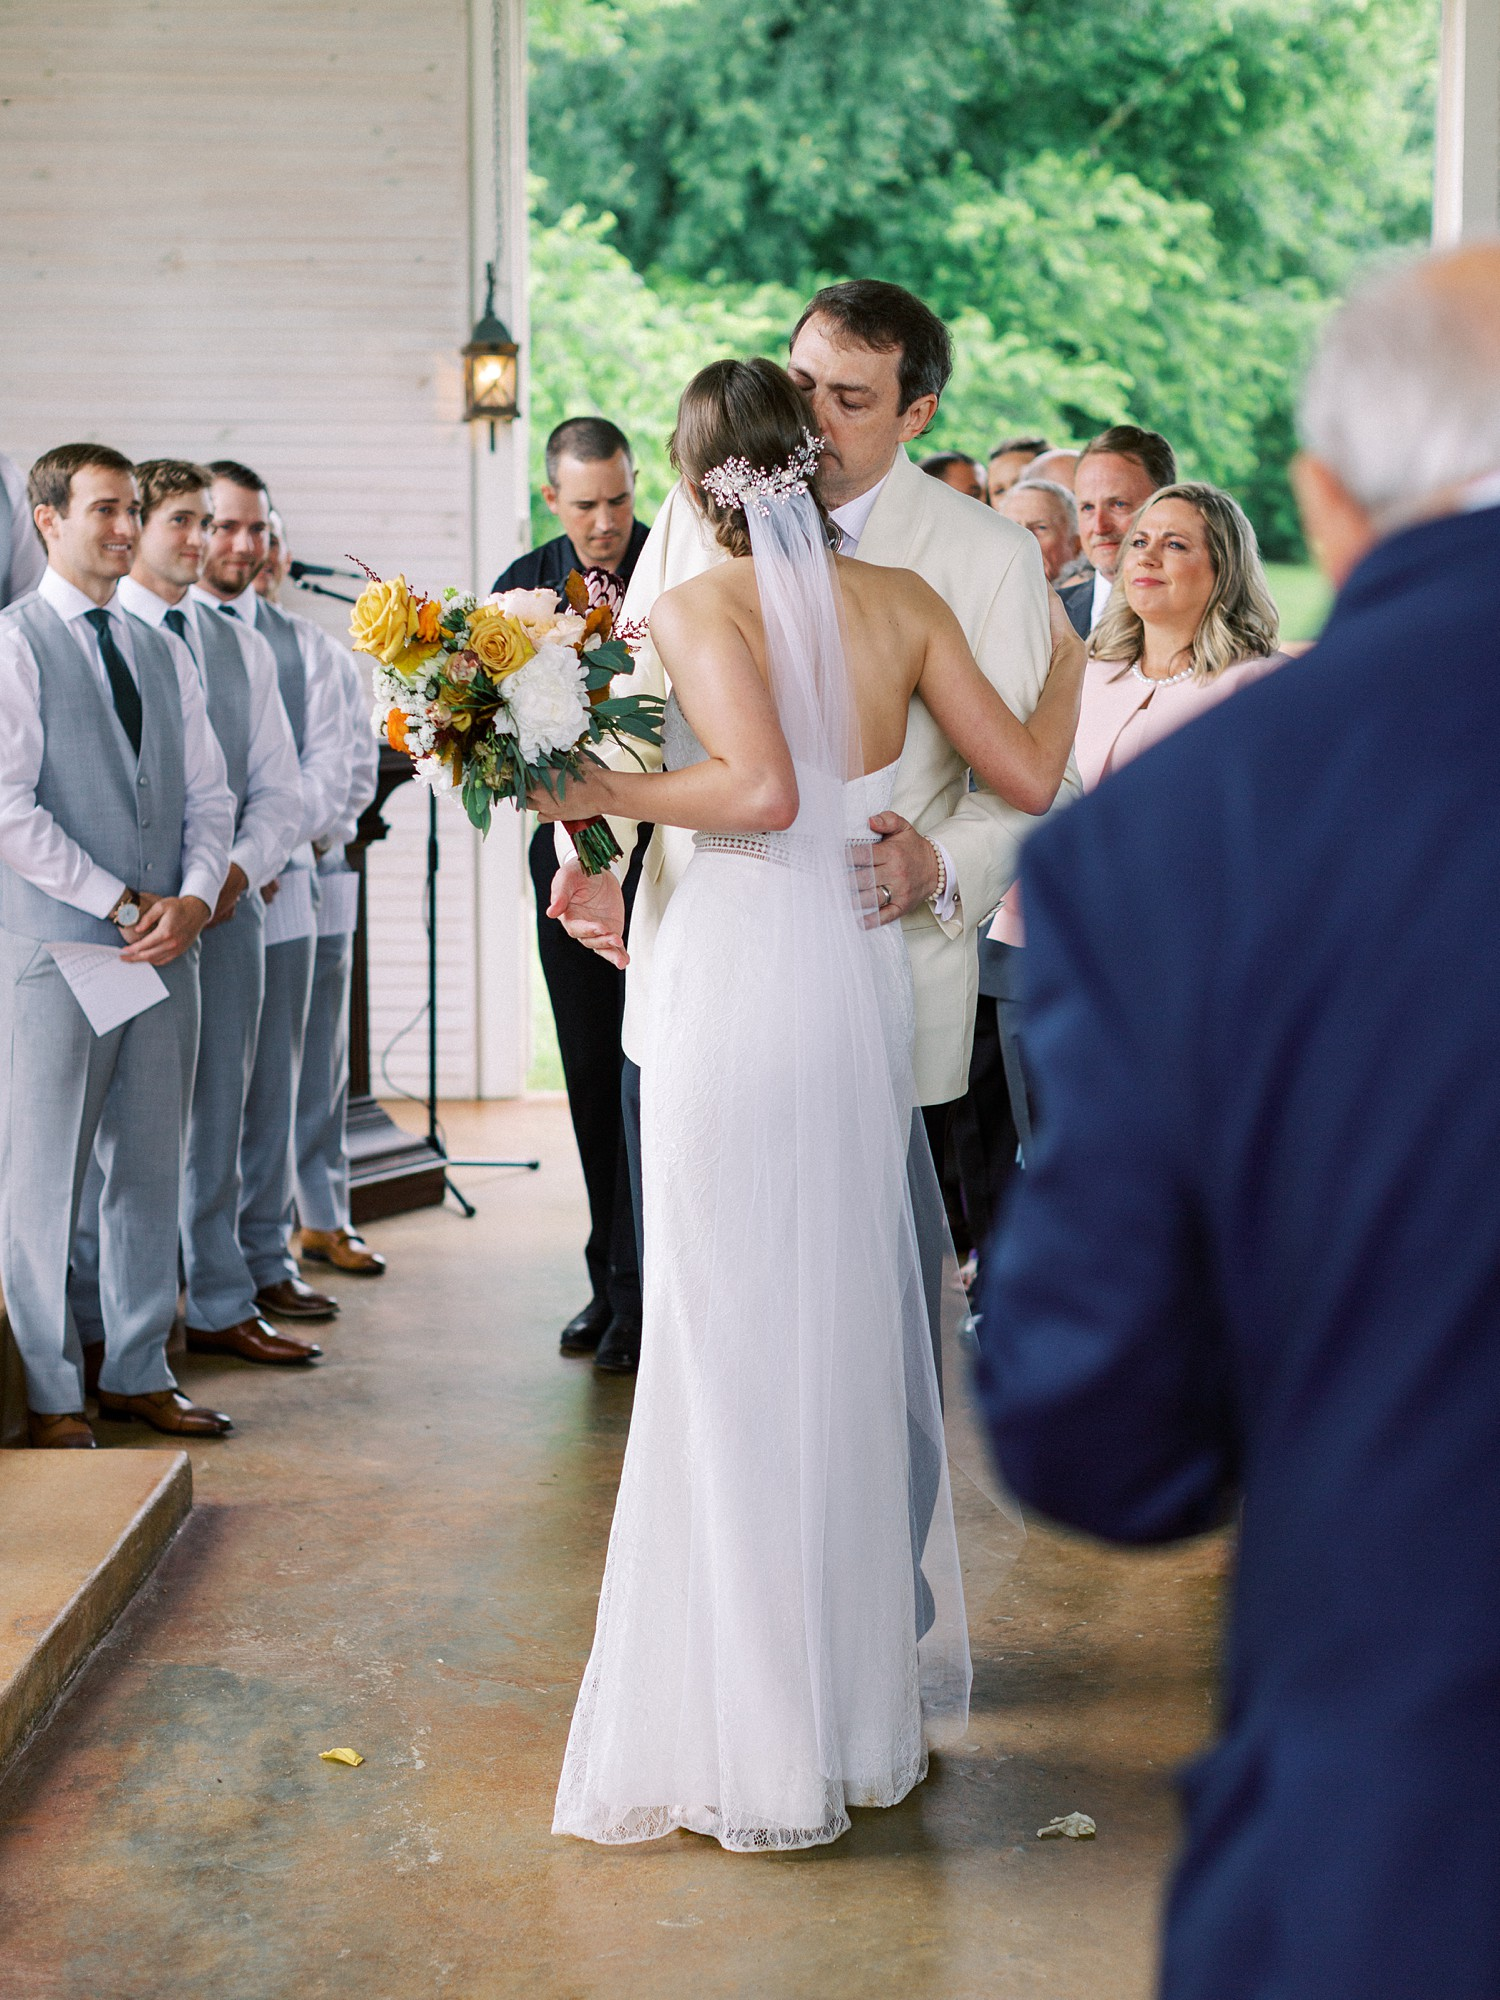 Intimate Wedding Ceremony | Summer Wedding Inspiration | Fort Worth Wedding Photographer | The Brooks at Weatherford